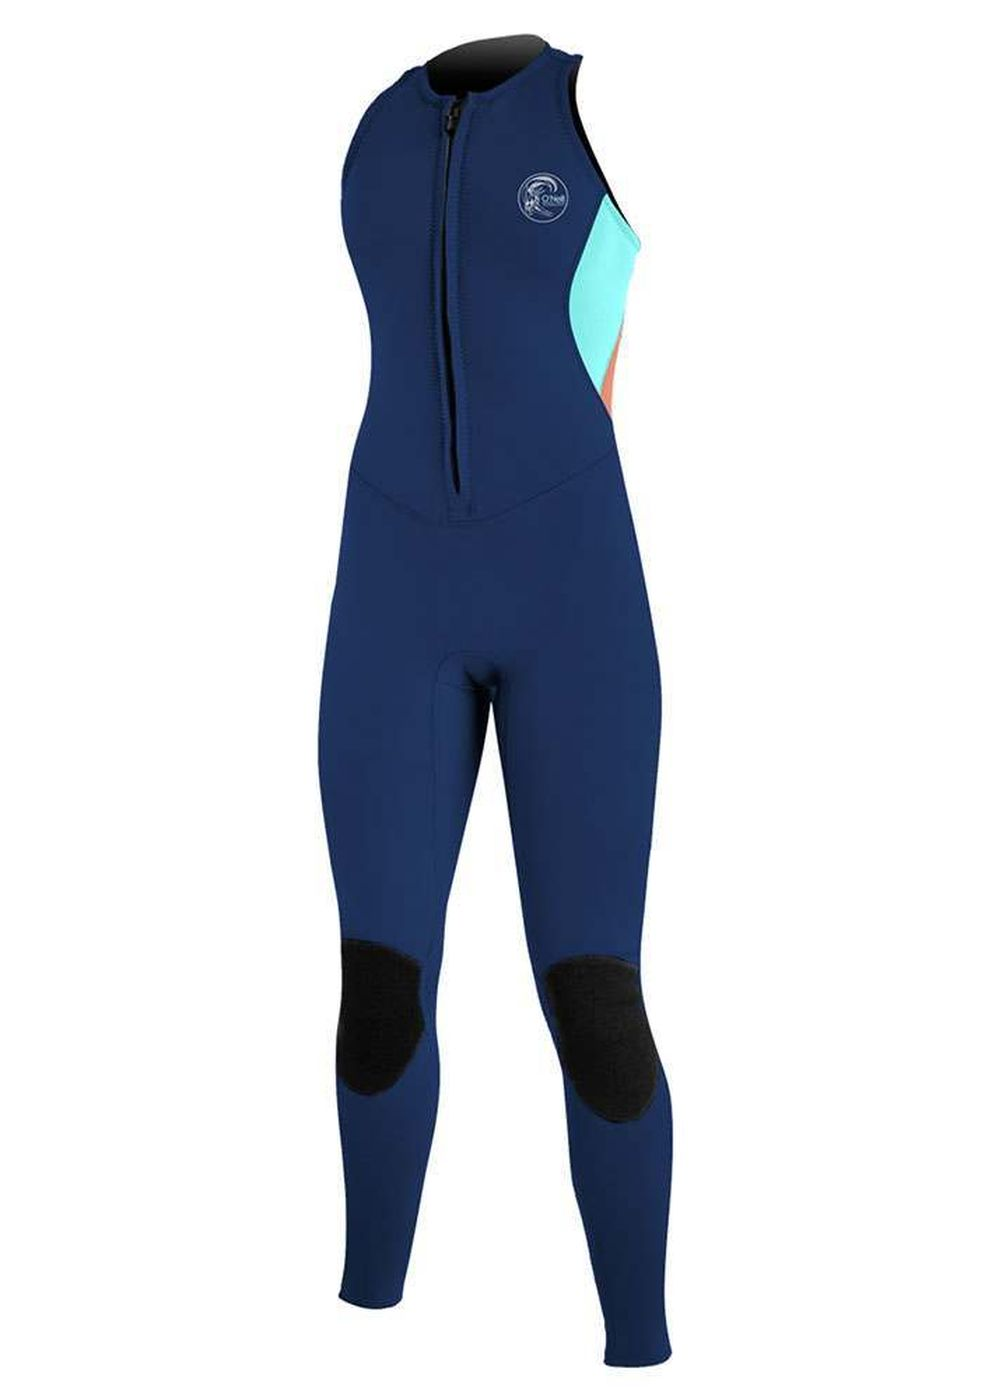 Oneill Womens Bahia Jane Wetsuit Navy Picture